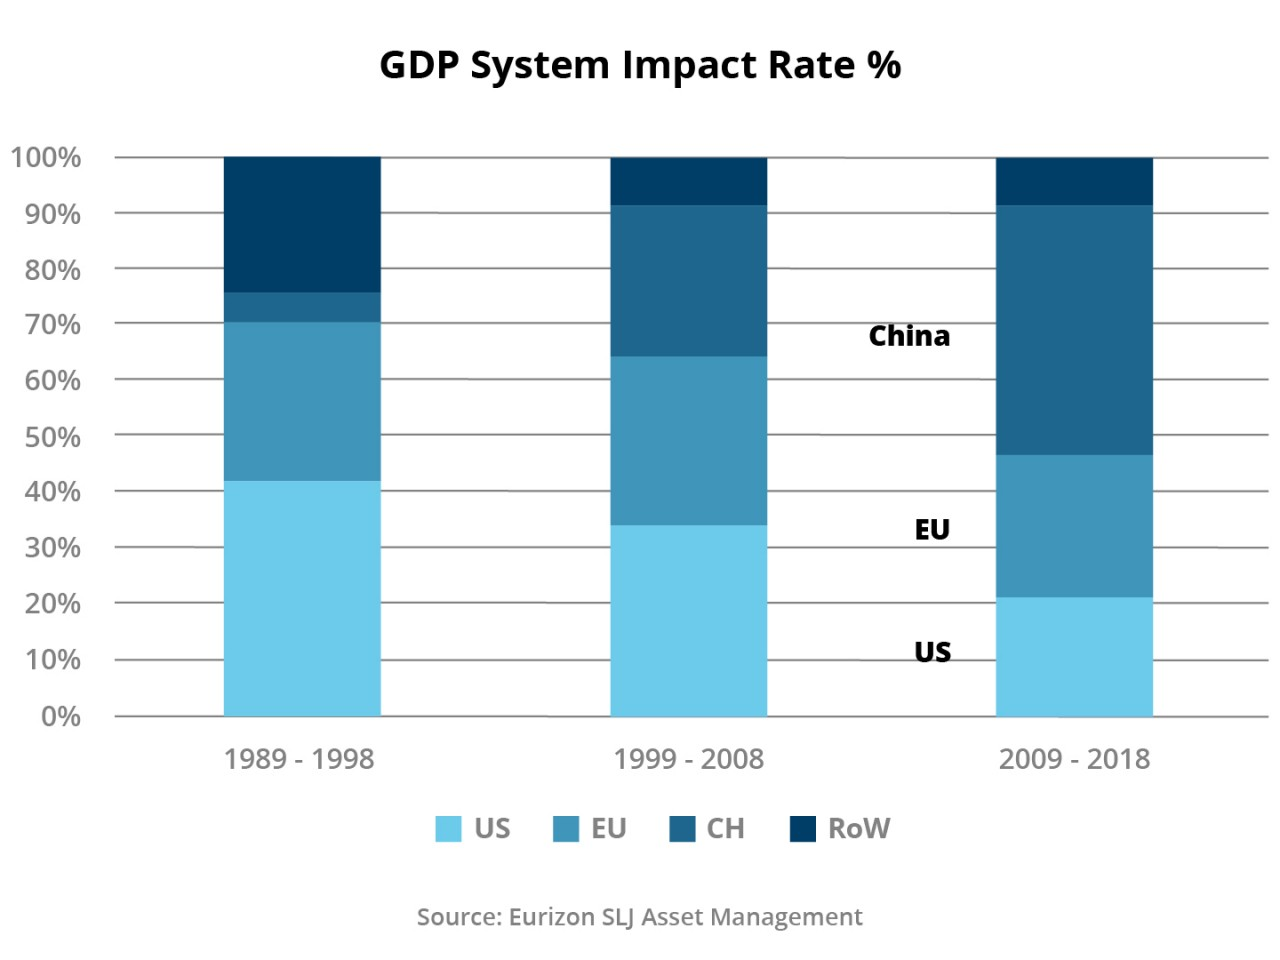 Figure 4: GDP system impact rate %